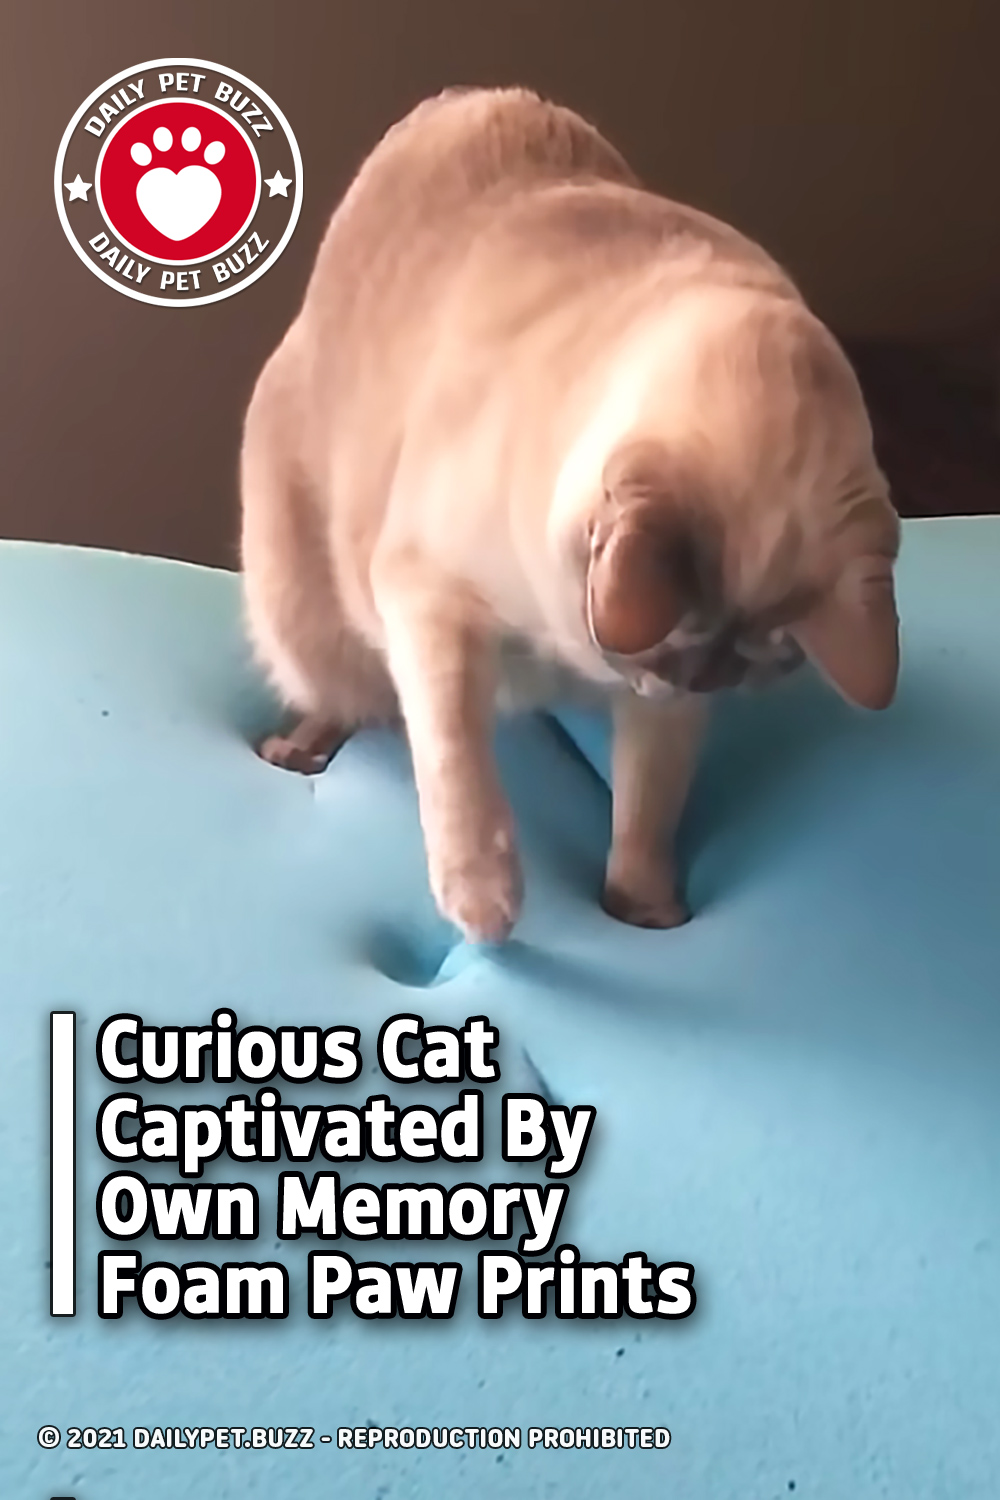 Curious Cat Captivated By Own Memory Foam Paw Prints